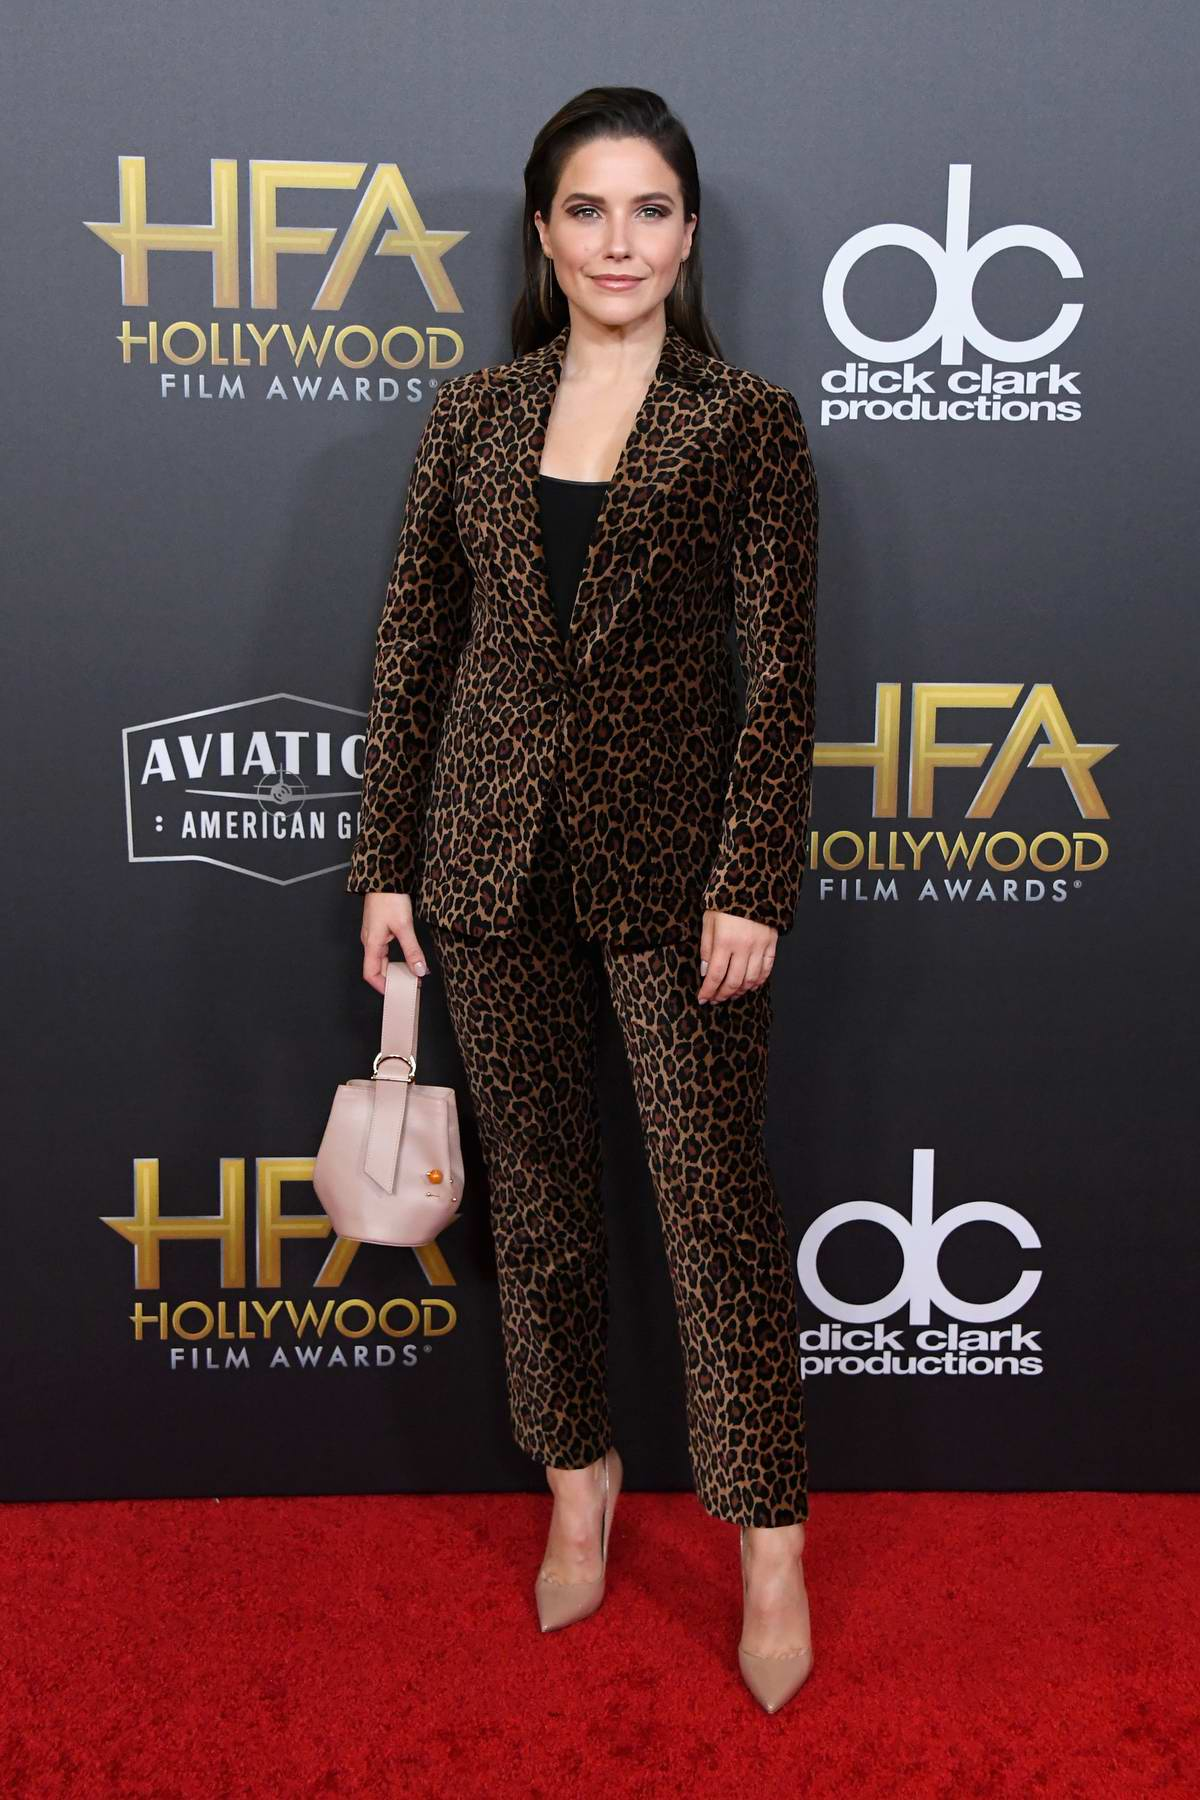 Sophia Bush attending the 22nd Annual Hollywood Film Awards in Los Angeles